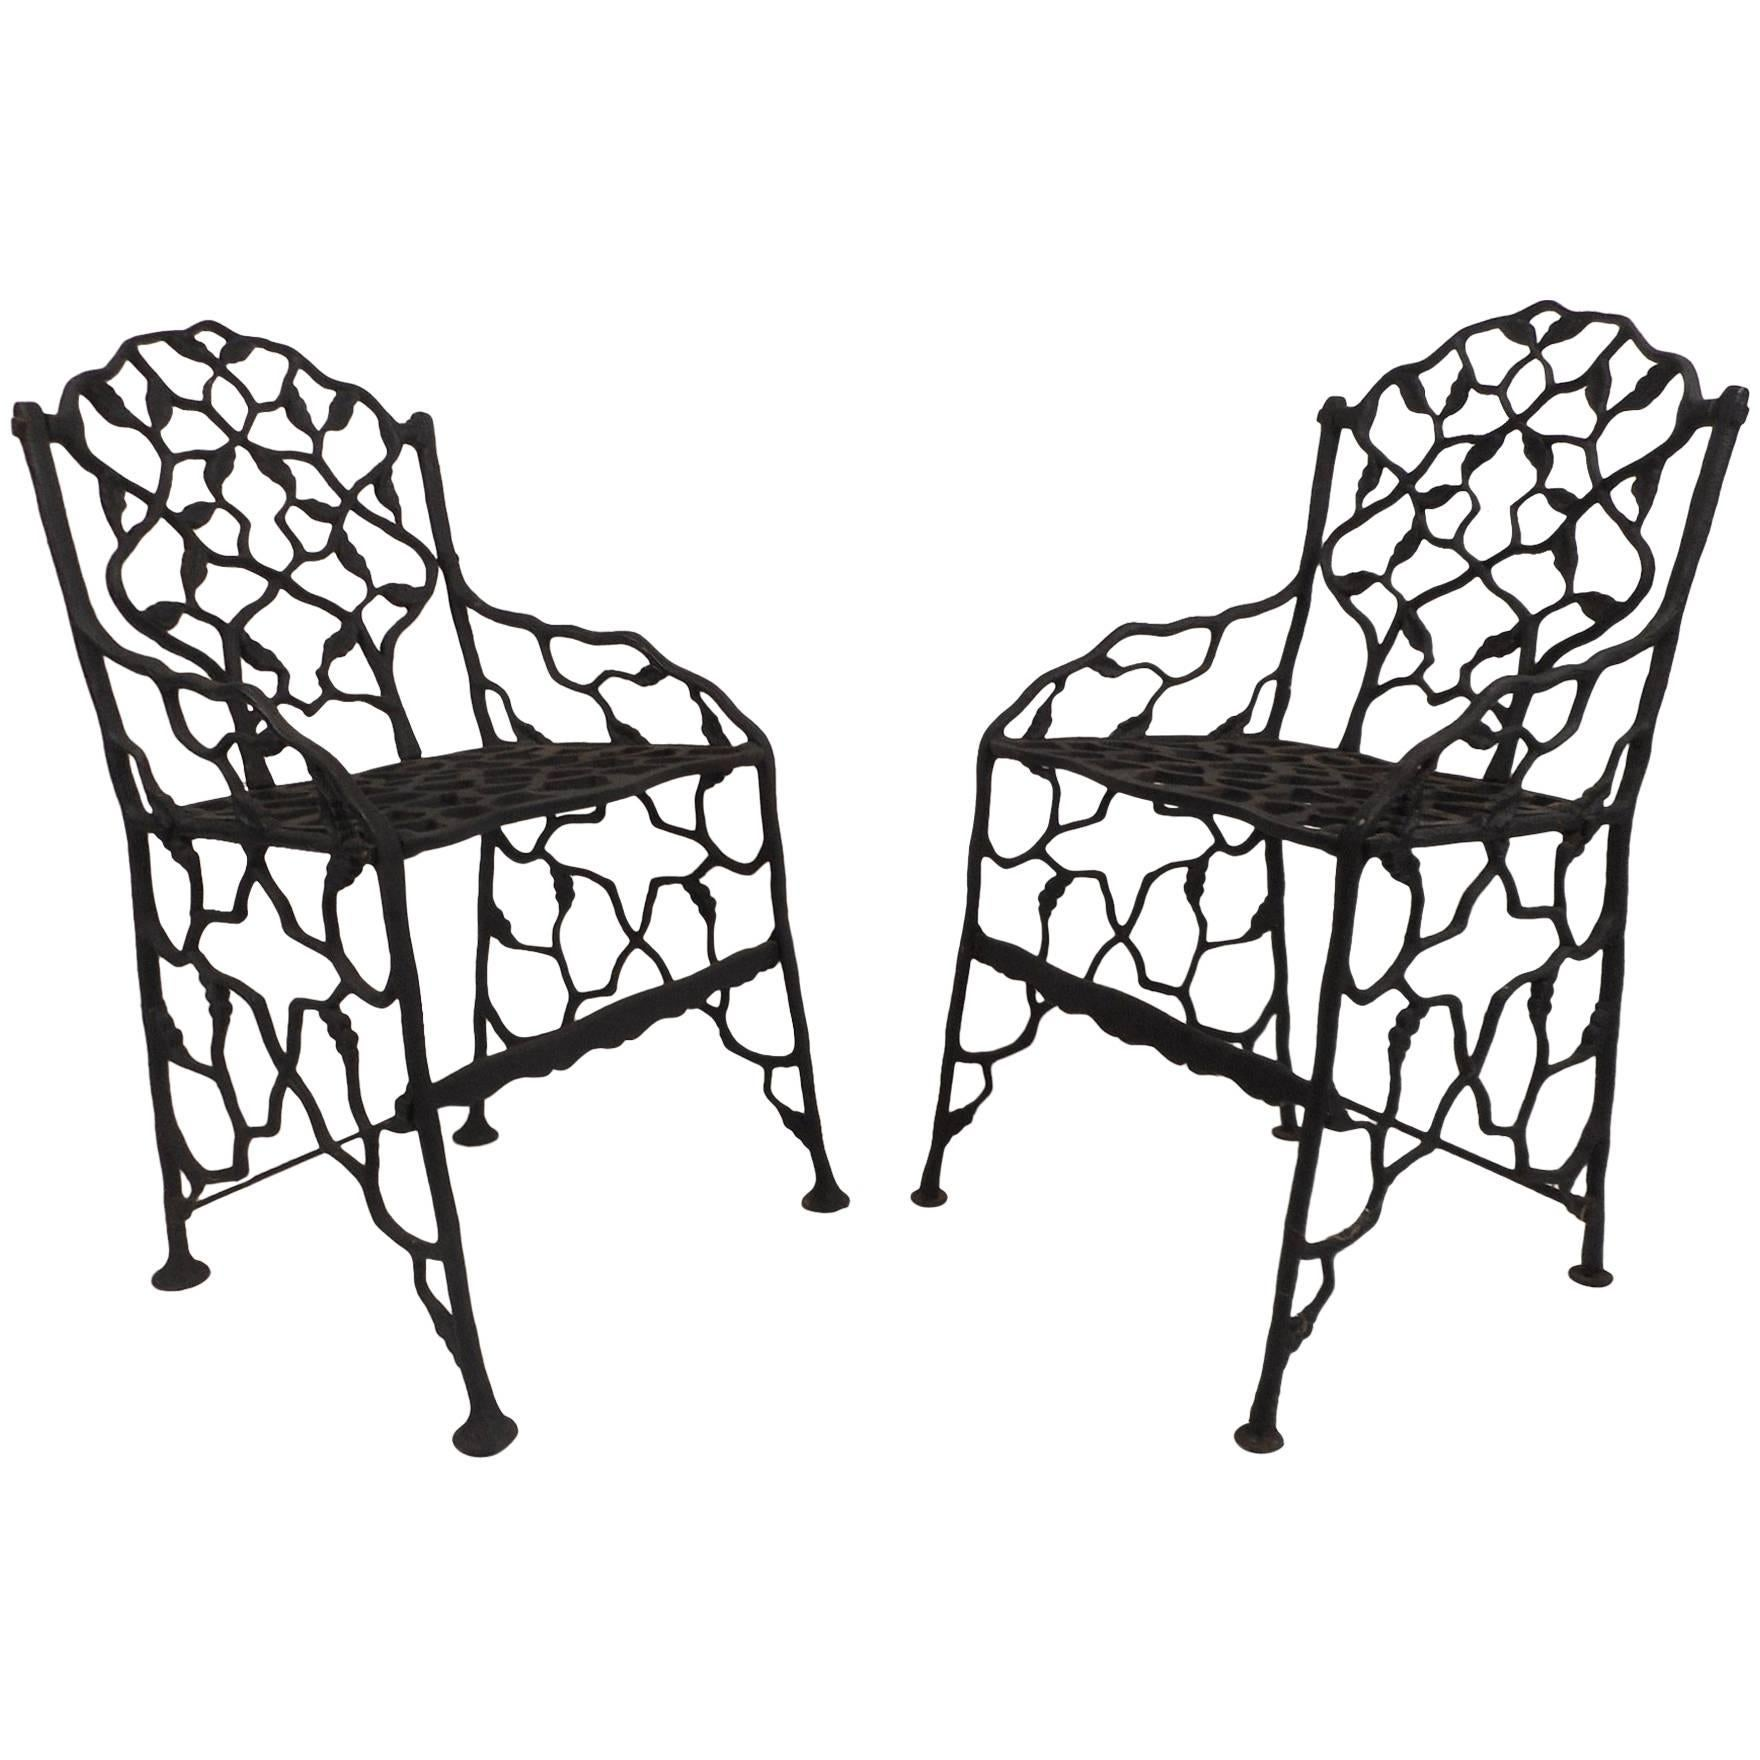 Rare Pair Of Vintage Cast Iron Chairs By Fiske For Sale